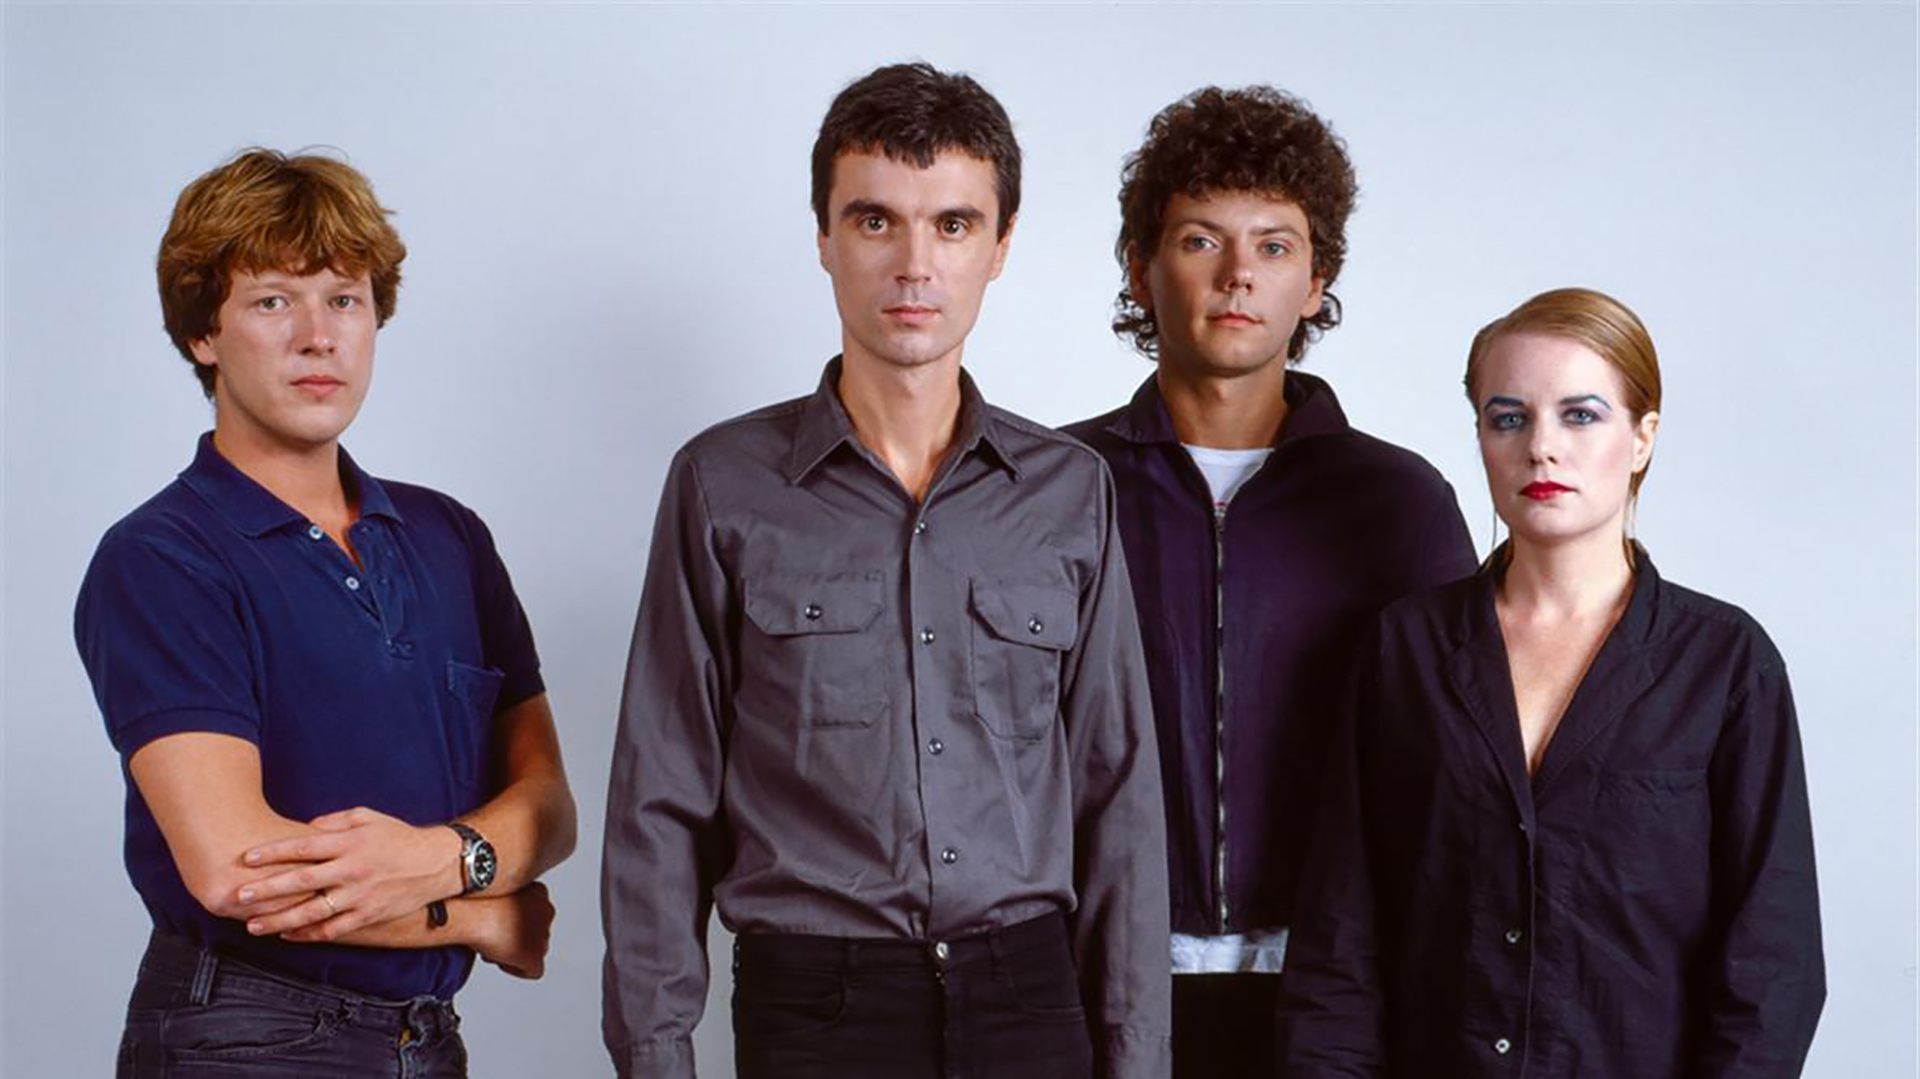 The band Talking Heads.